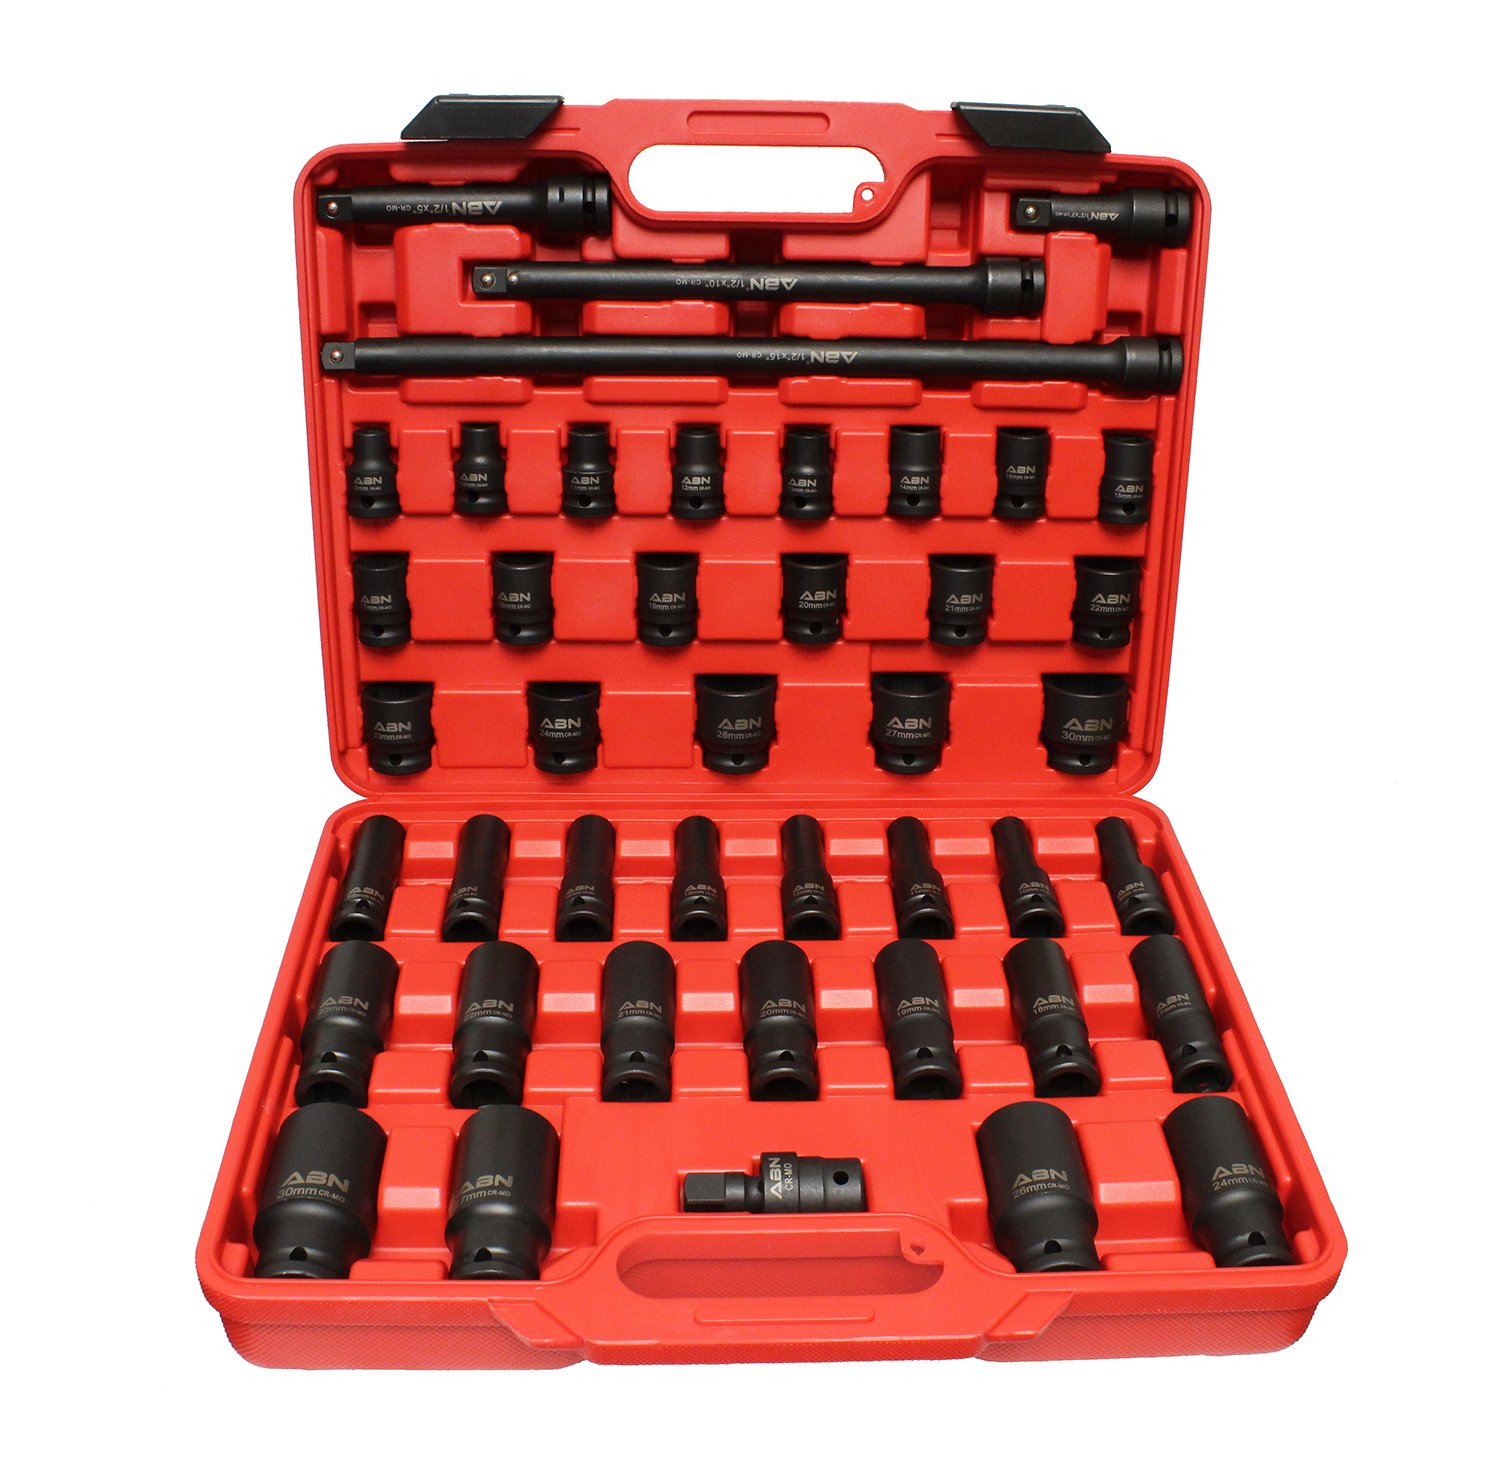 ABN 1/2'' Inch Drive Metric Master Deep & Shallow Impact Socket 43-Piece Set 9mm to 30mm with Extensions & Swivel Joint by ABN (Image #1)